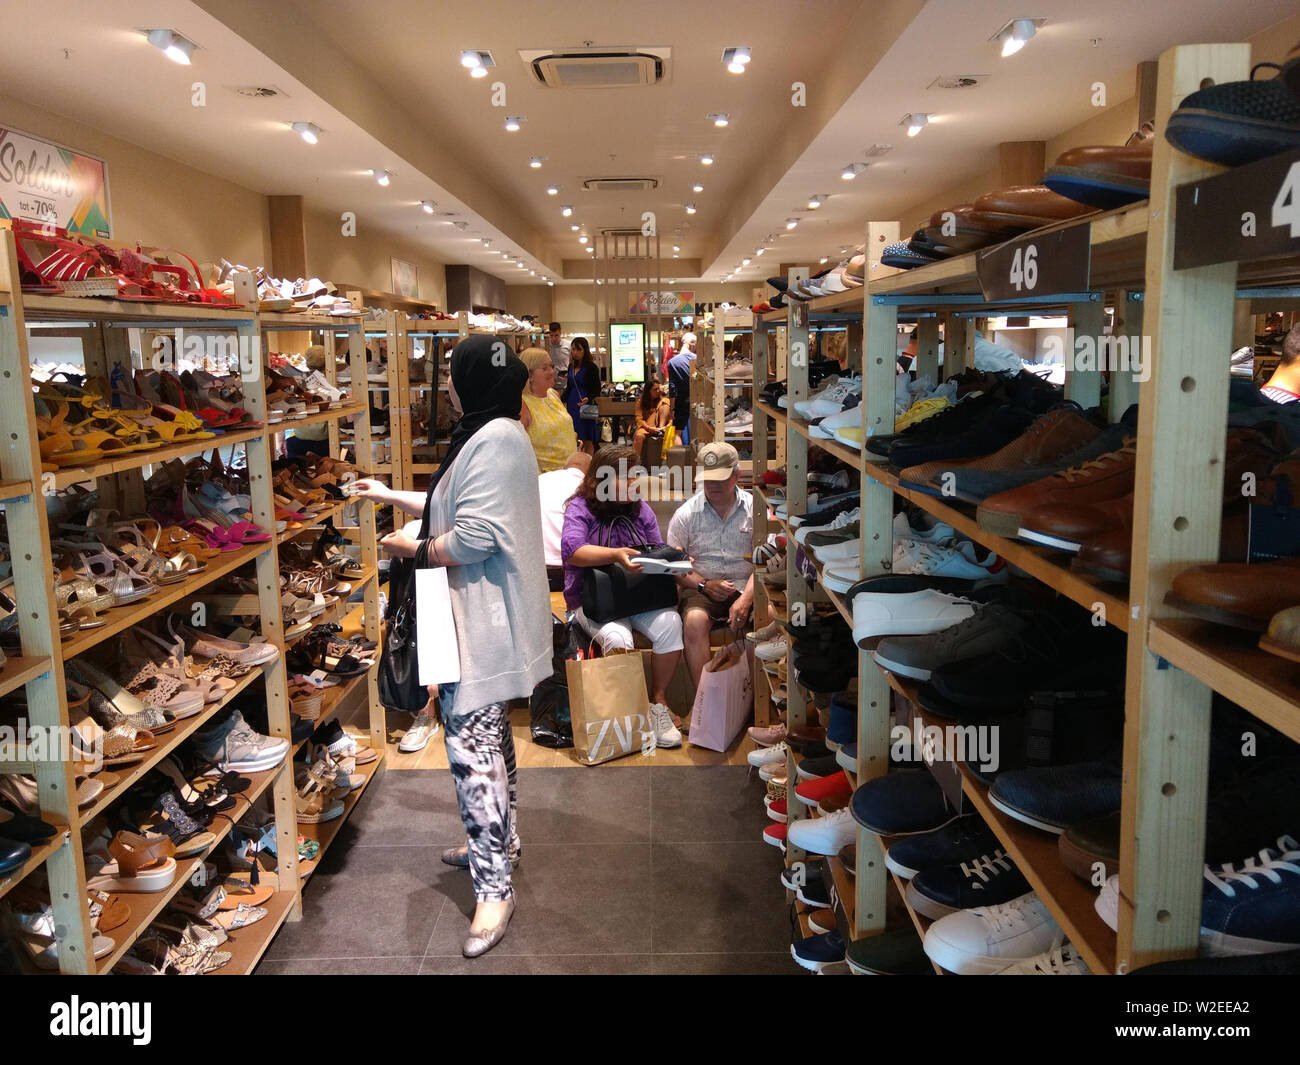 People shopping for shoes in a store - Stock Image